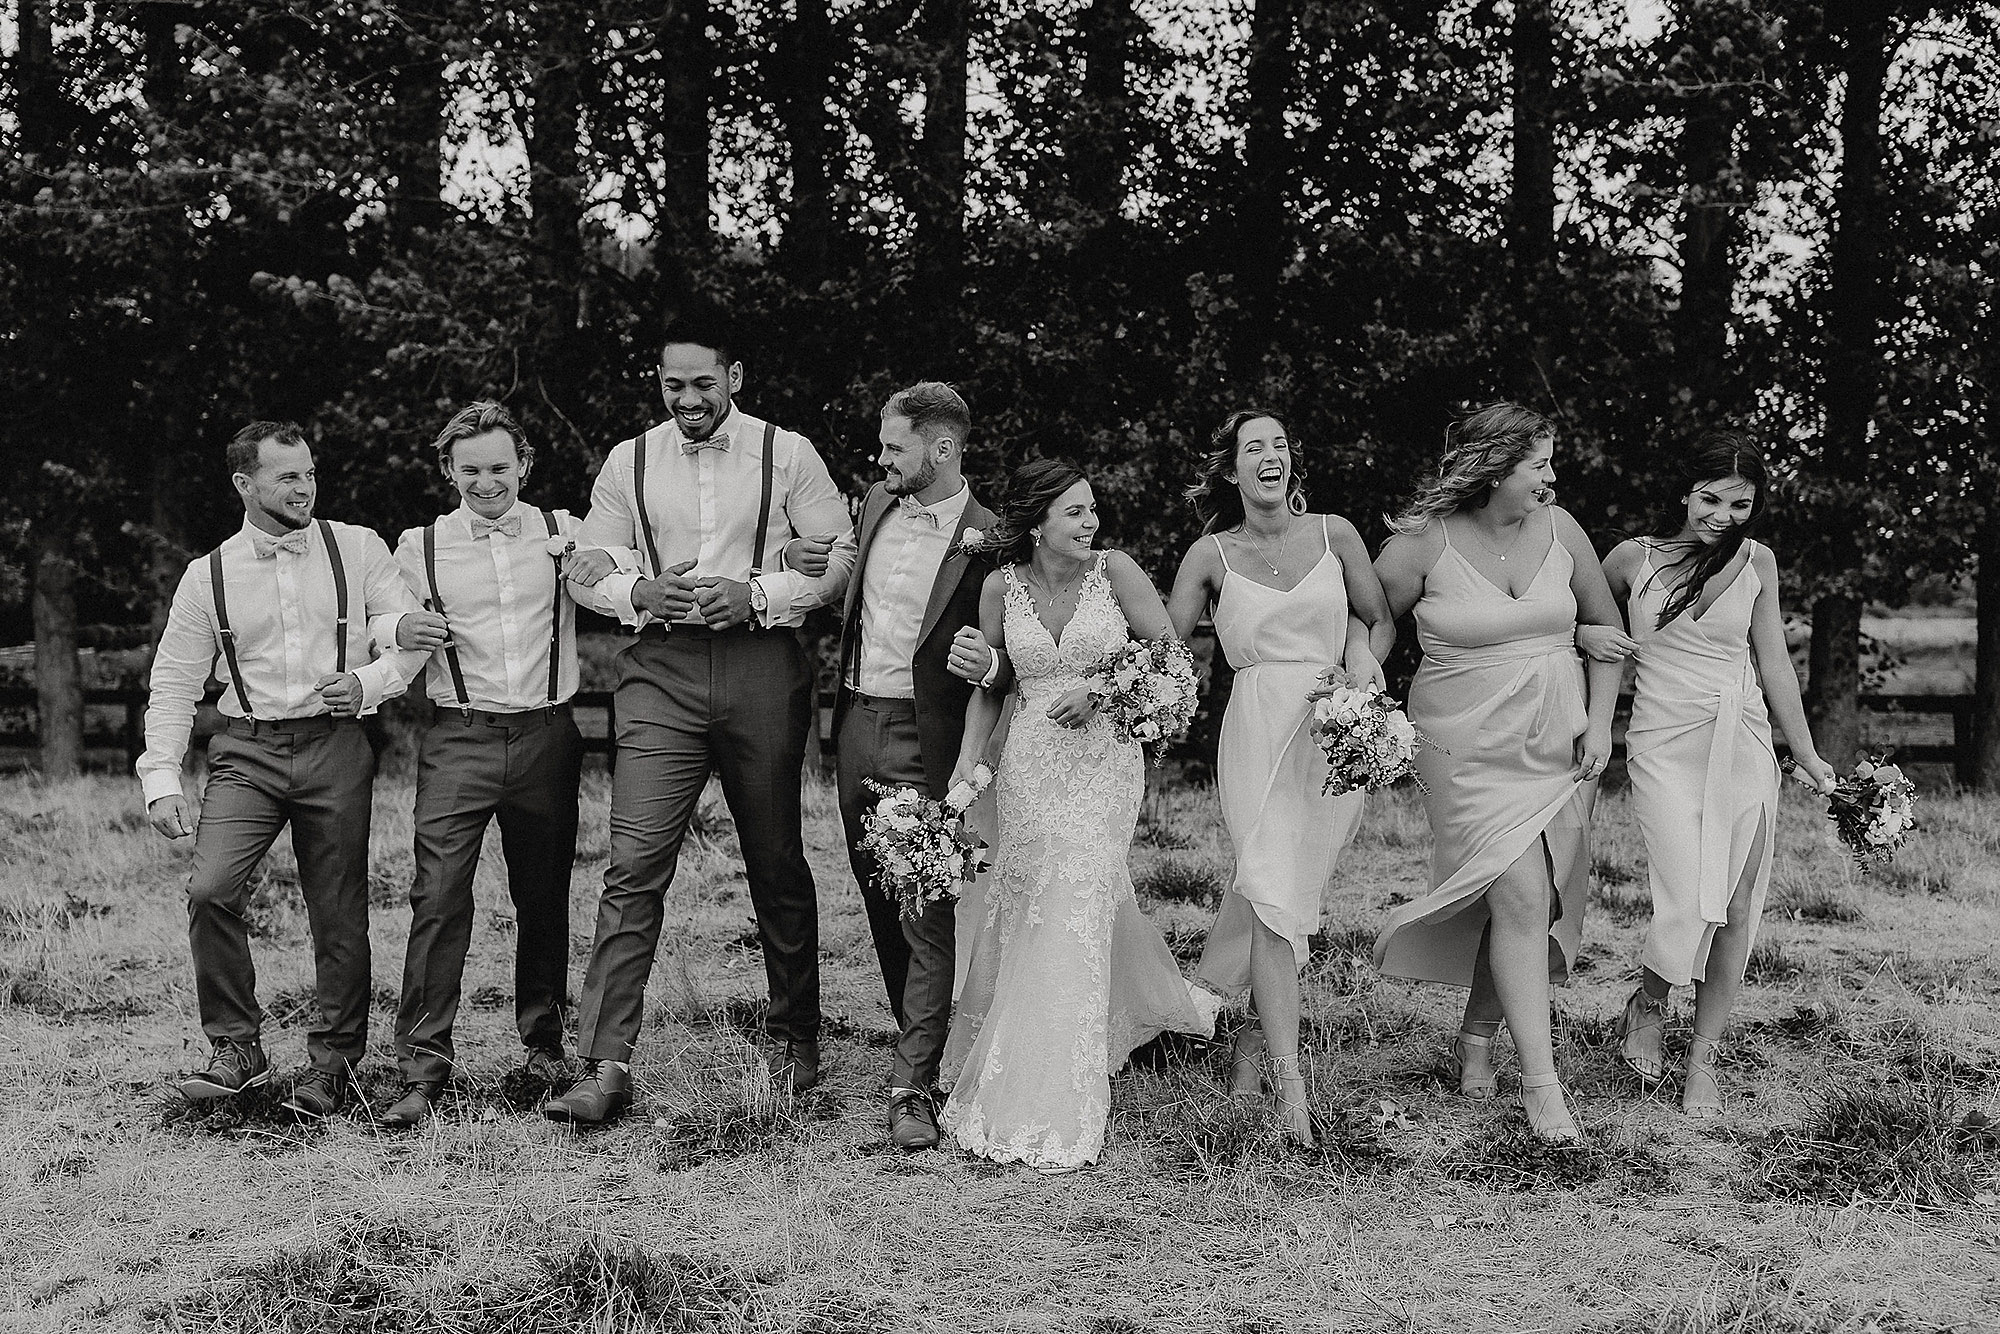 Christchurch Wedding Photographer wedding photo of fun bridal party at Lacebark Function Centre Christchurch Rebecca Claridge Photography